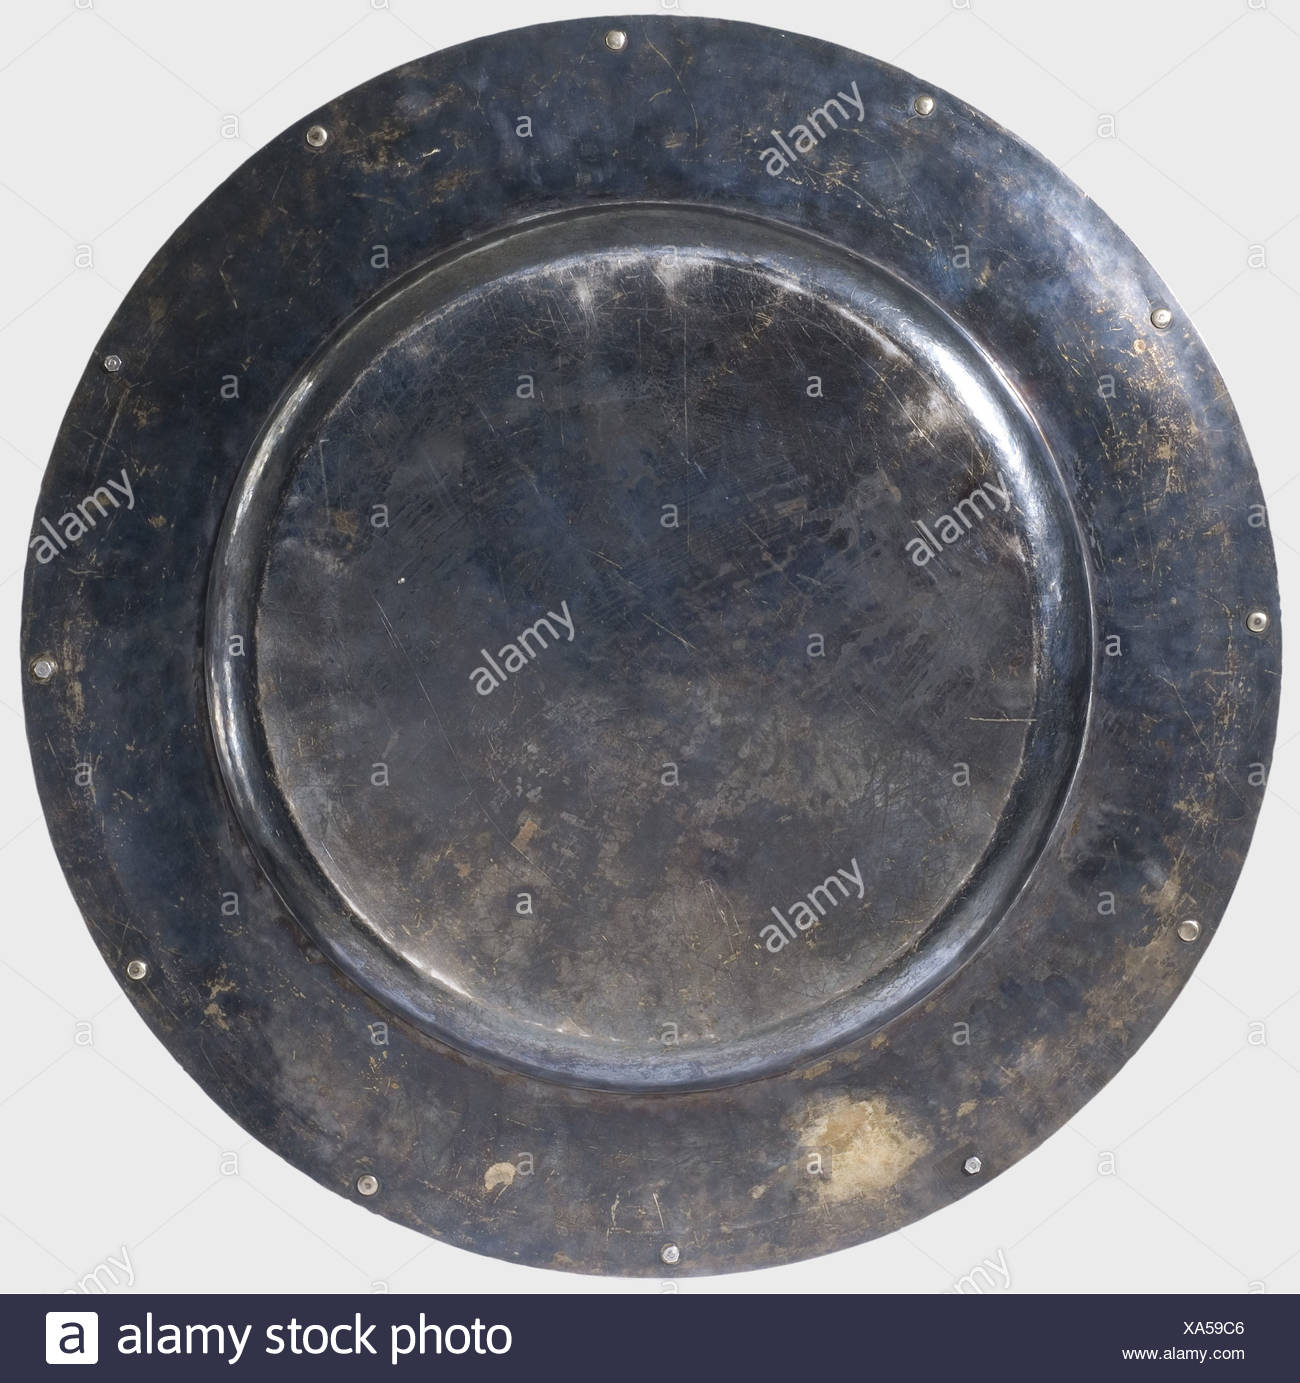 Hermann Göring, a large silver platter, present of the Luftwaffe Silver serving platter, 64.5 cm diameter, weight 4240 g. The edge of the border decorated with alternating three-dimensional laurel branches and groups of three/five moonstones and sapphire cabochons respectively (72 moonstones, 24 sapphires). Outer edge of the border gold-plated. Centre of the platter engraved with the Luftwaffe Eagle in front of the sun, small aircraft emanating from its rays (He111, Ju87). Under the eagle the silversmith mark of Professor Herbert Zeitner, Berlin, and hallmark ', Additional-Rights-Clearences-NA Stockbild